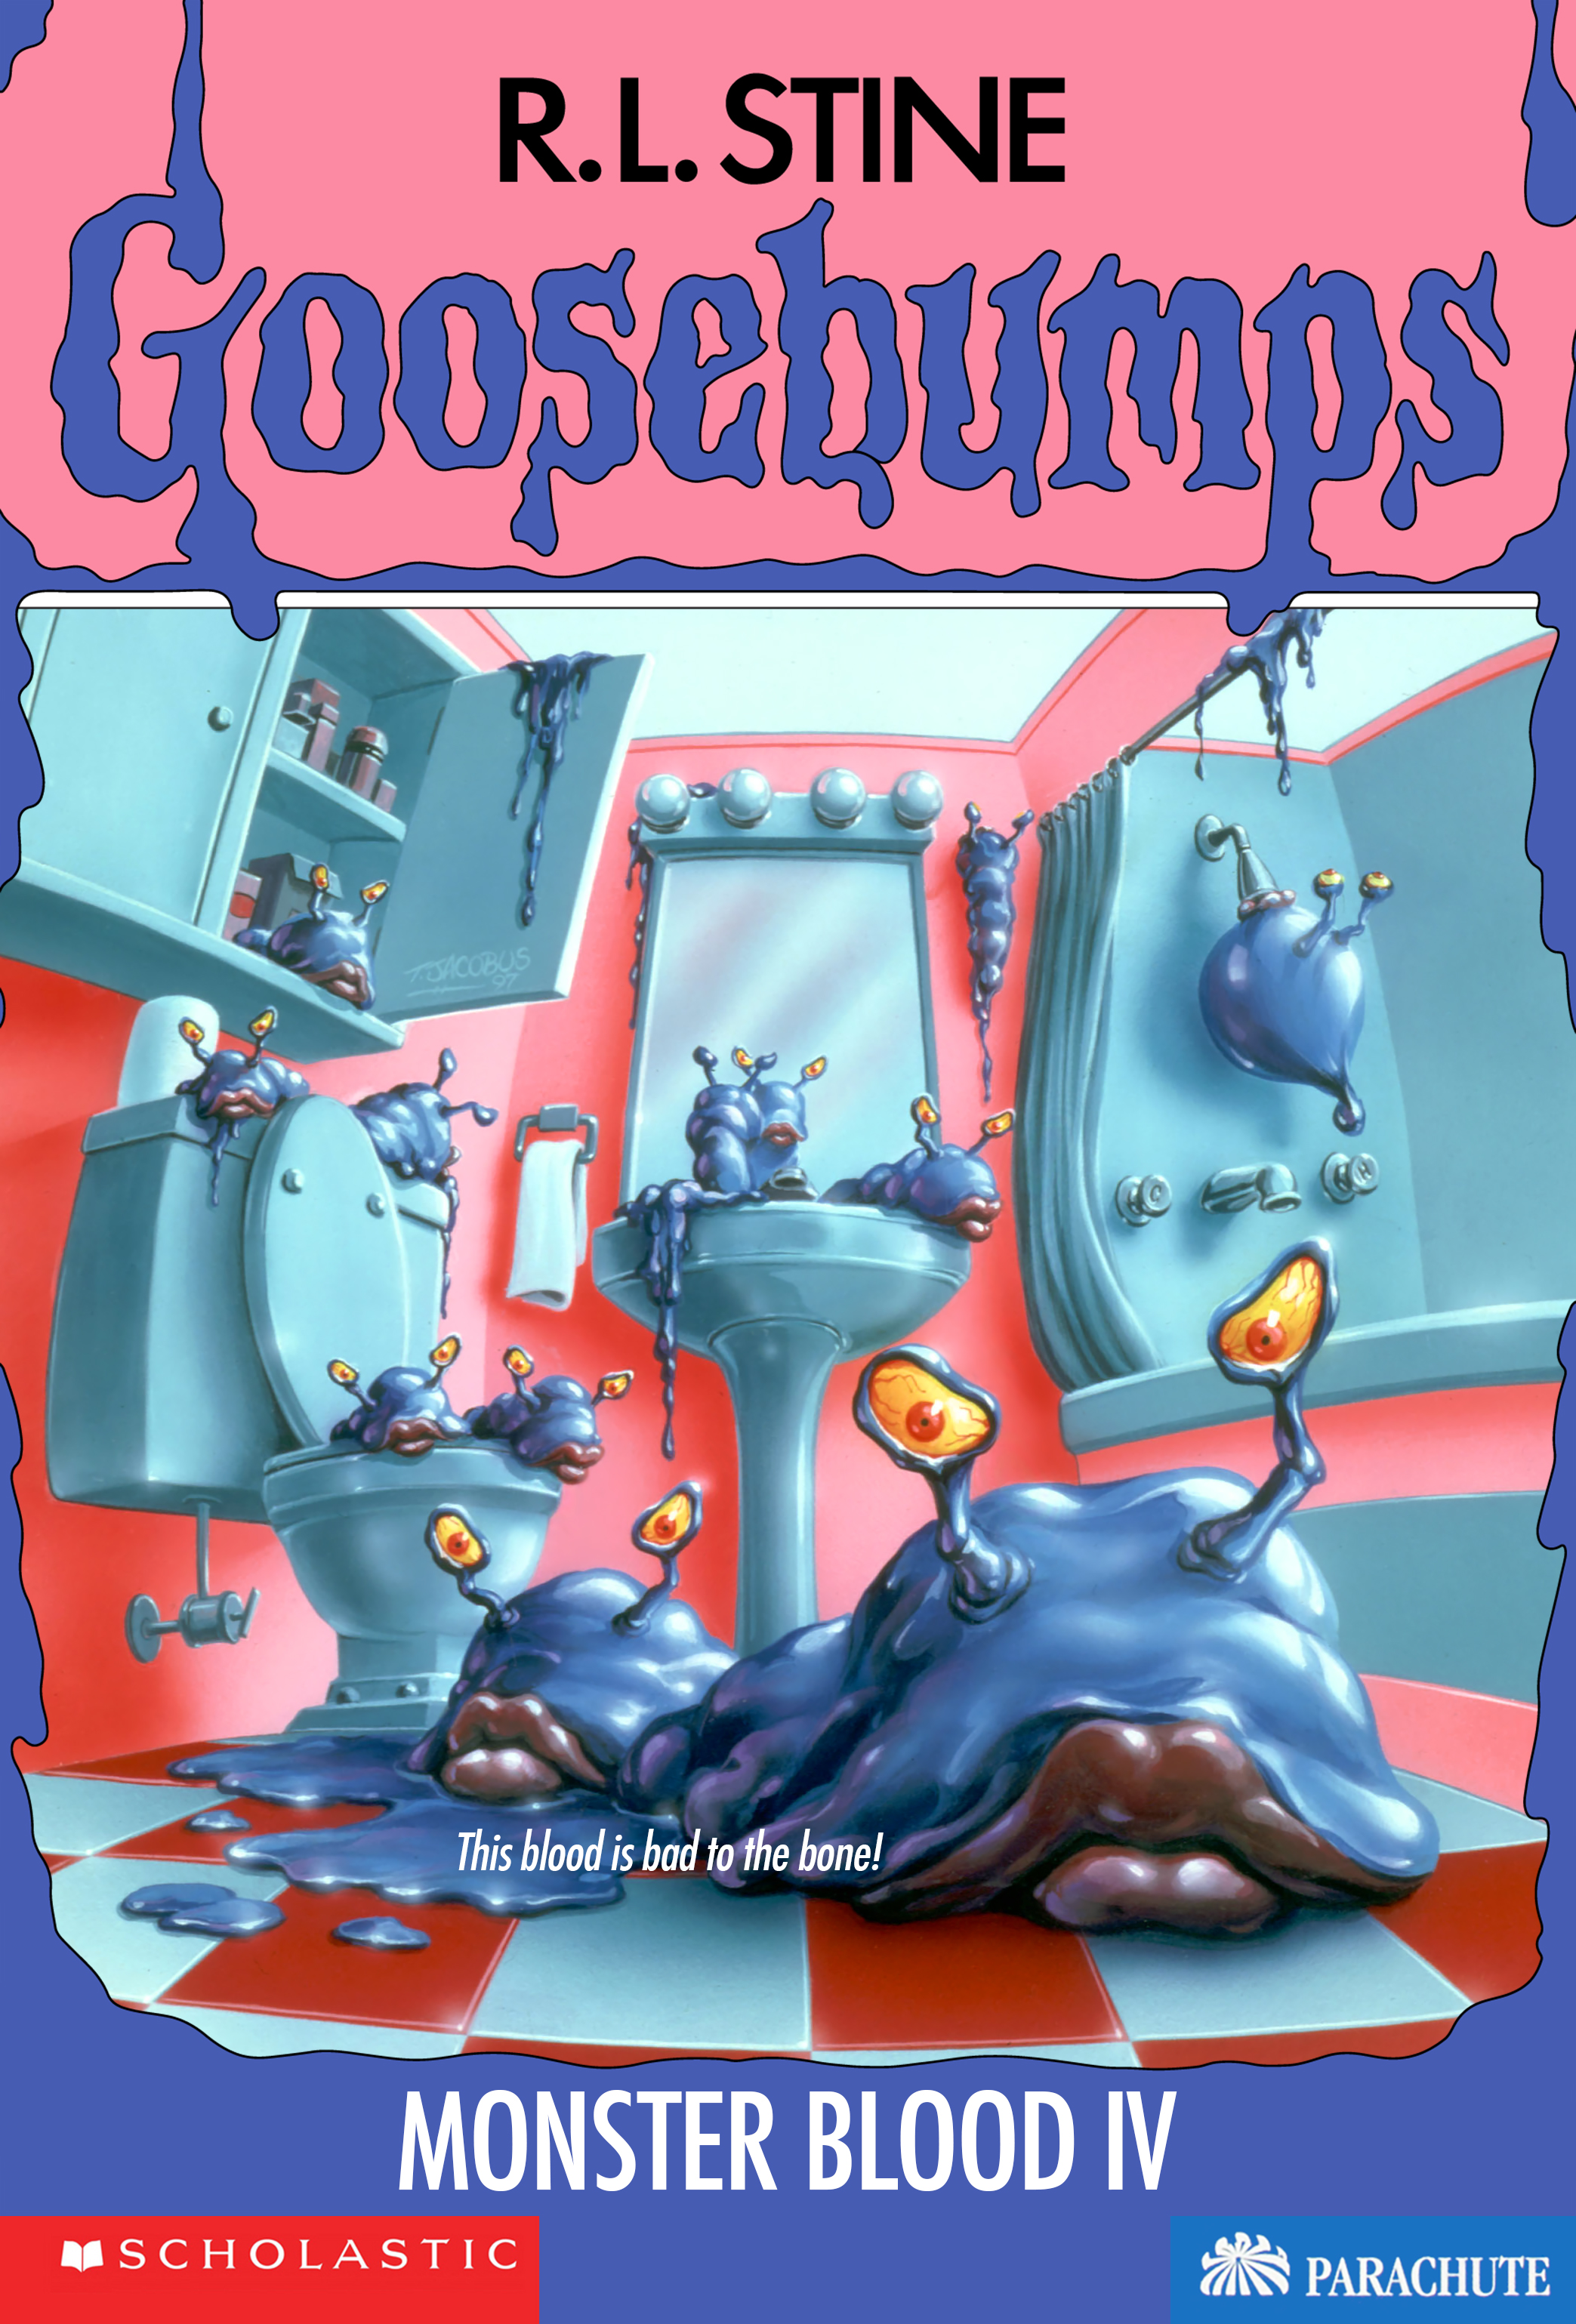 Goosebumps 56 the curse of camp cold lake ebook array monster blood iv goosebumps wiki fandom powered by wikia rh goosebumps wikia fandeluxe Images